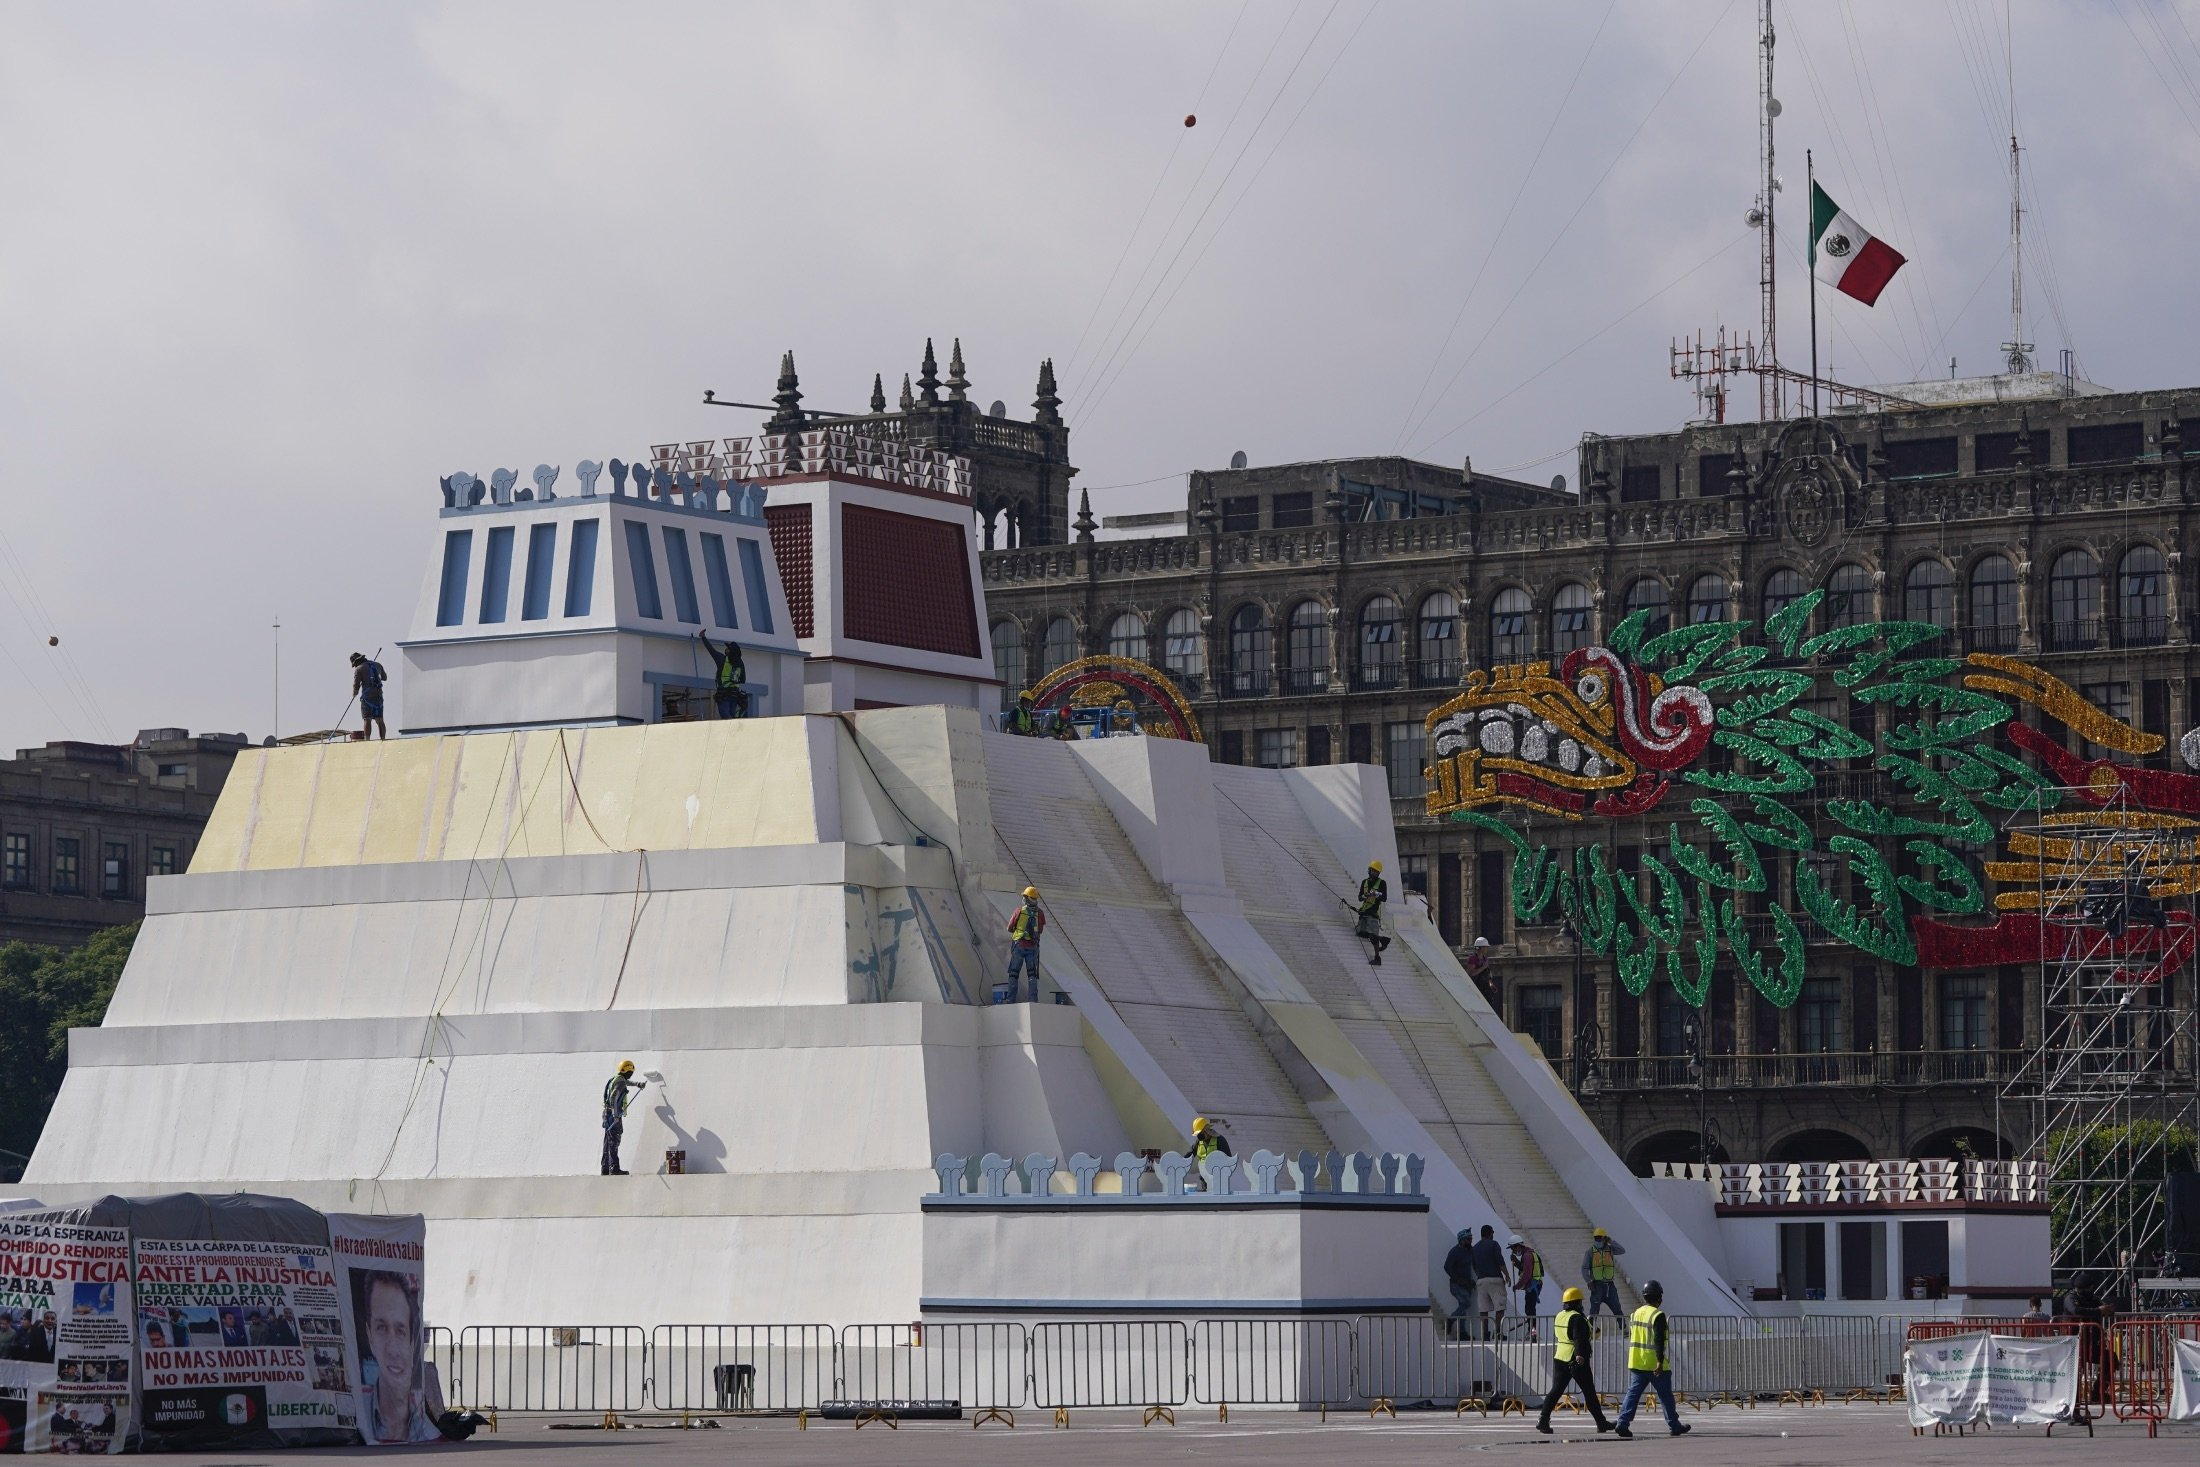 Workers build a replica of the Aztec Templo Mayor, with an image of the Pre-Columbian god Quetzalcoatl adorning the surrounding buildings, at Mexico City´s main square the Zocalo, Mexico, Aug. 9, 2021. (AP Photo)